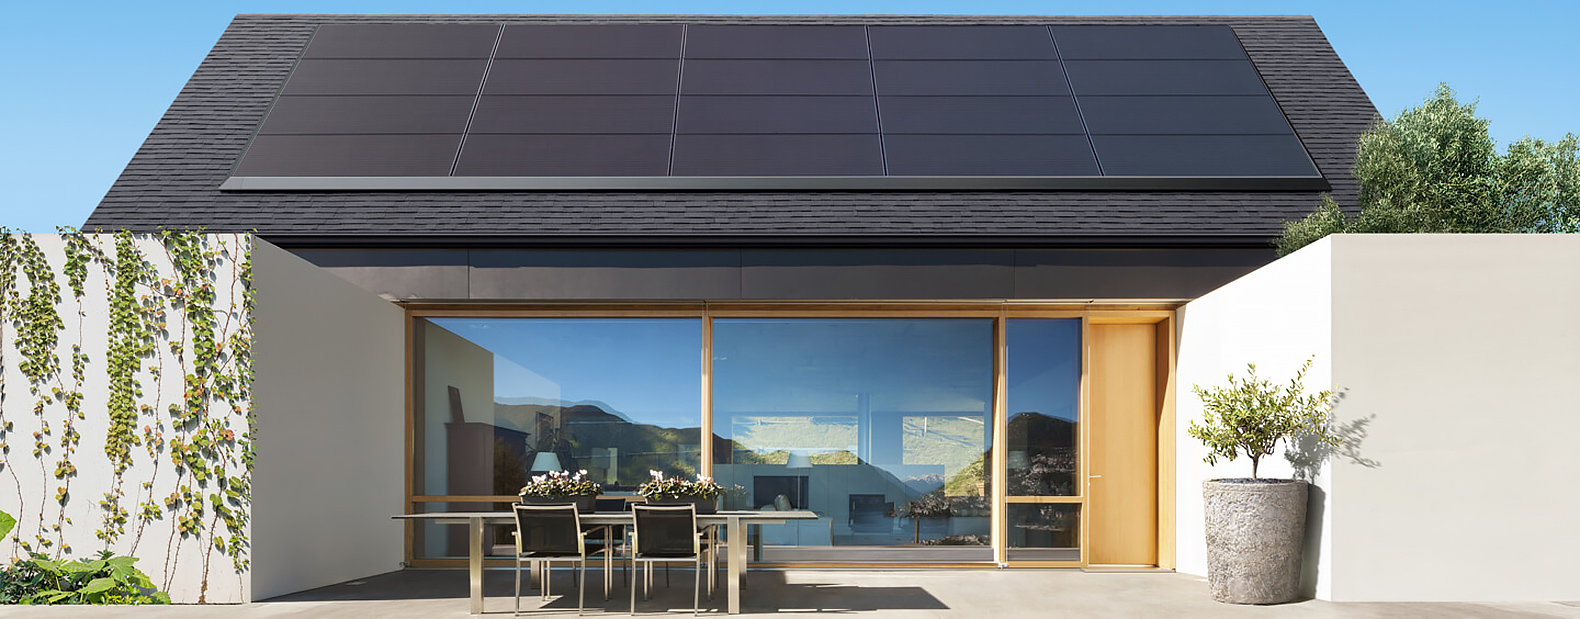 Rooftop Solar Sets New Generation Record in South Australia